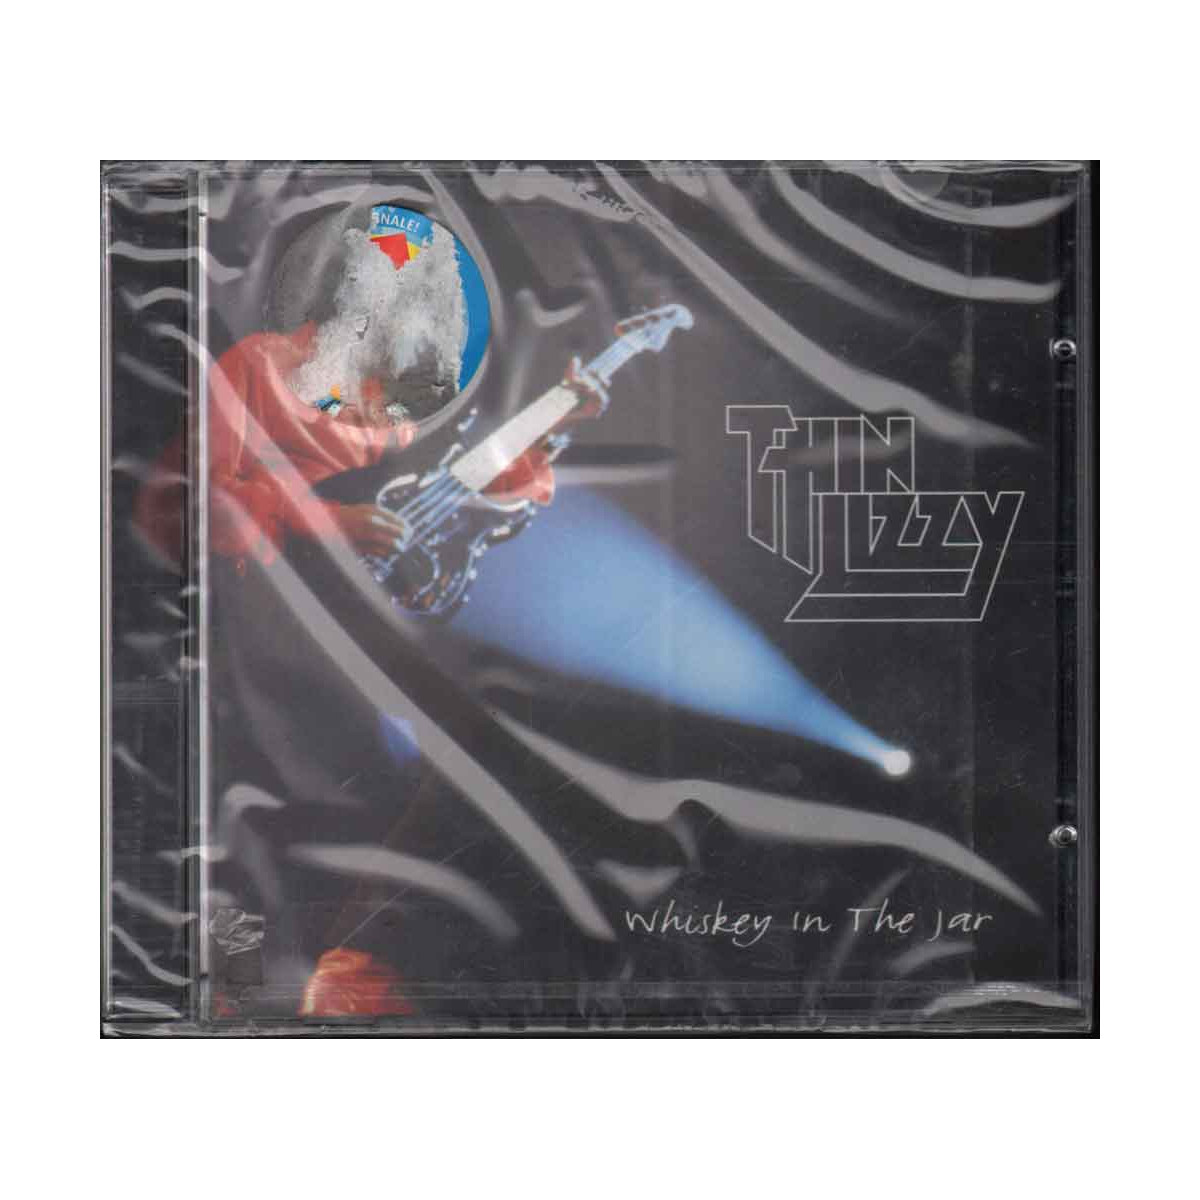 Thin Lizzy  CD Whiskey In The Jar Nuovo Sigillato 0731455208528